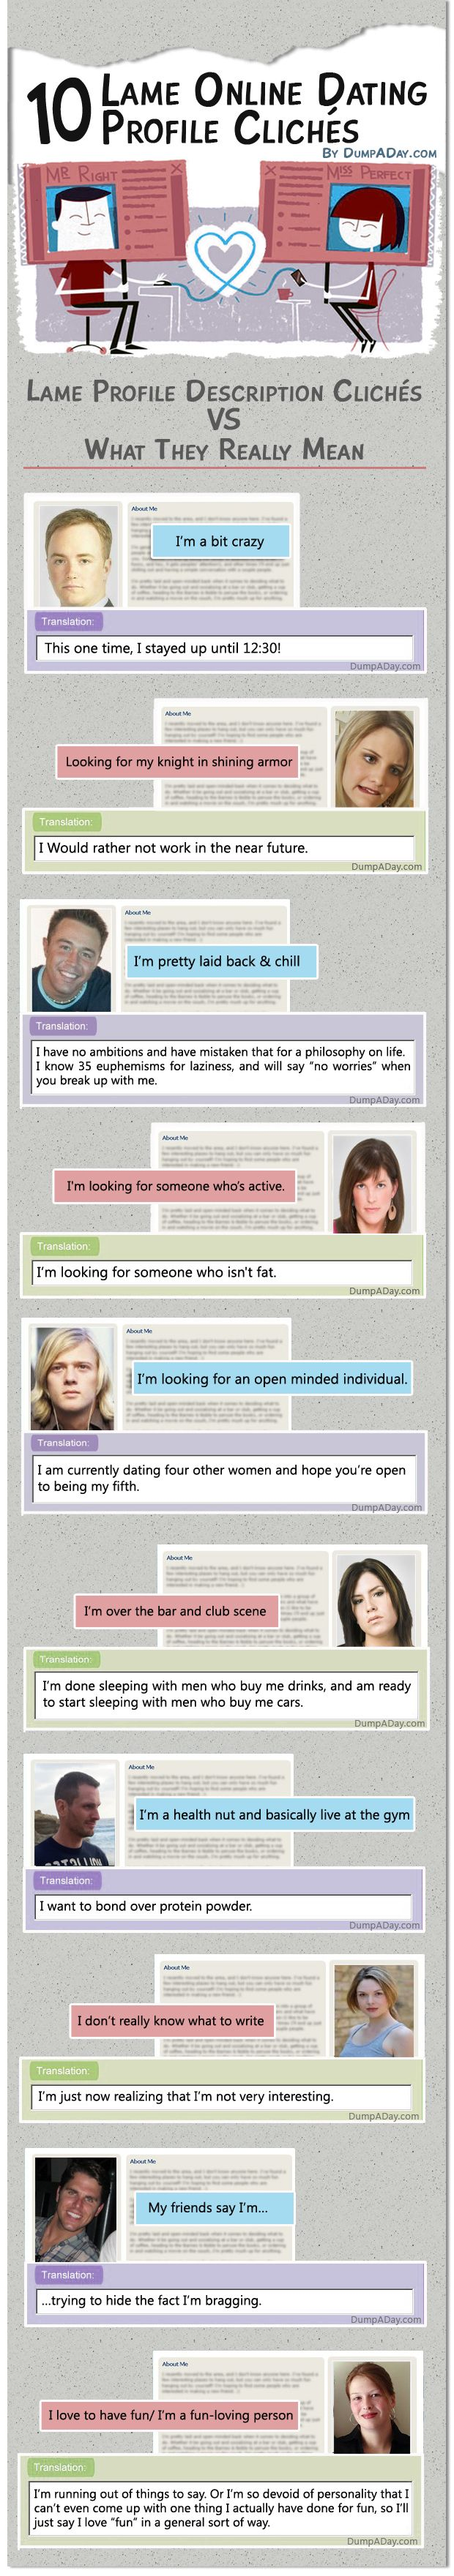 Funny dating profile cliches